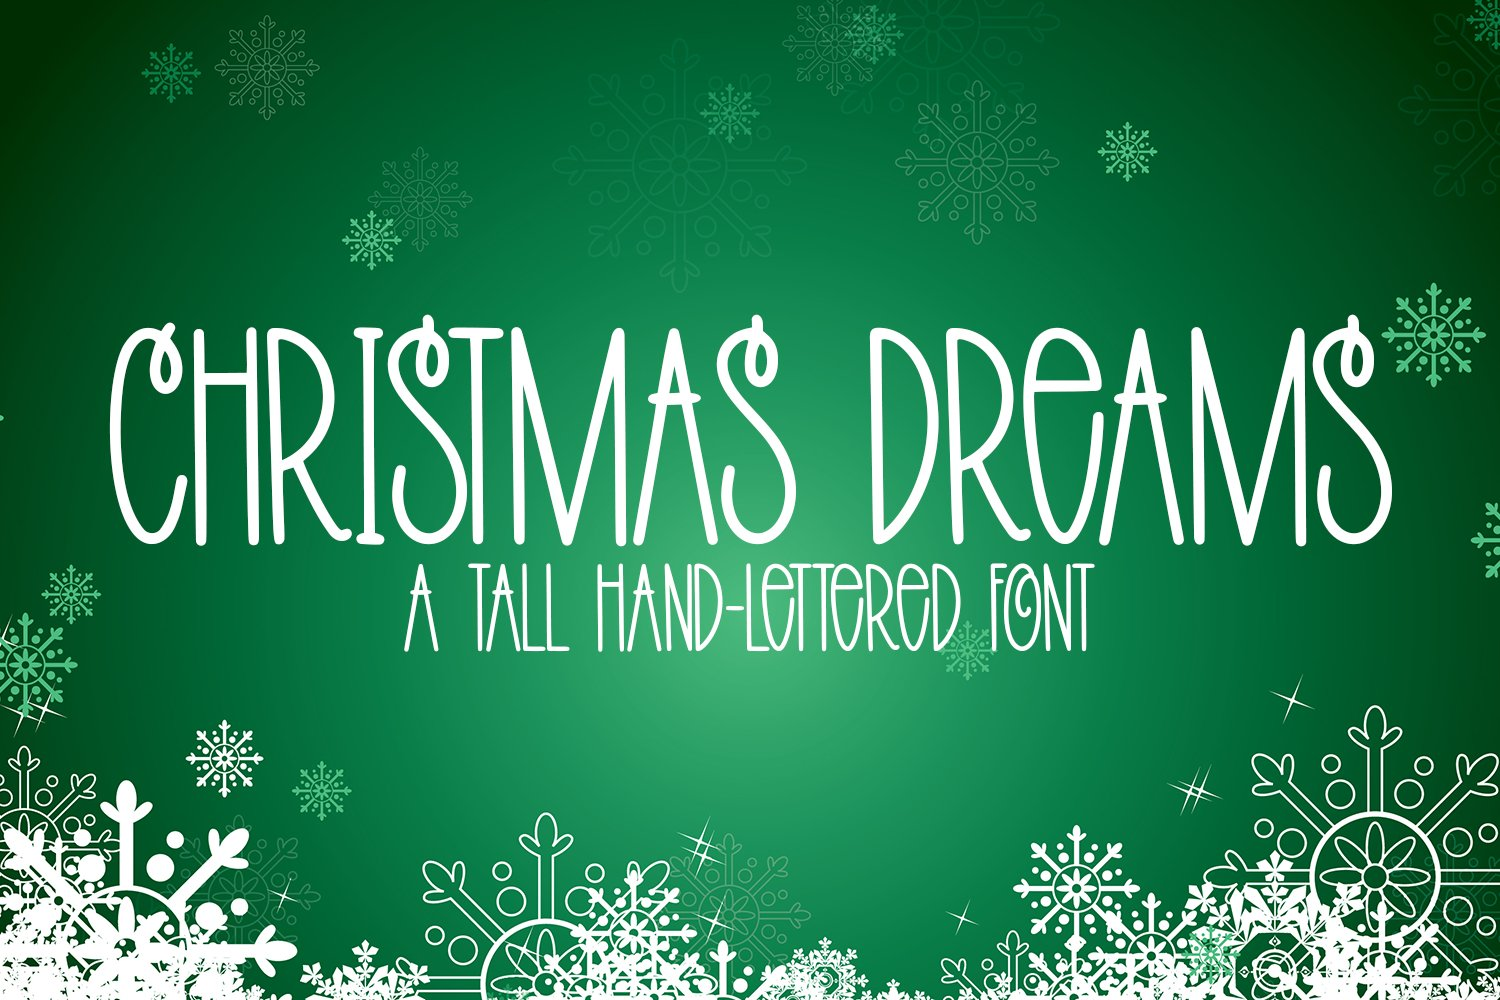 Christmas Dreams - A Tall Hand-Lettered Christmas Font example image 1